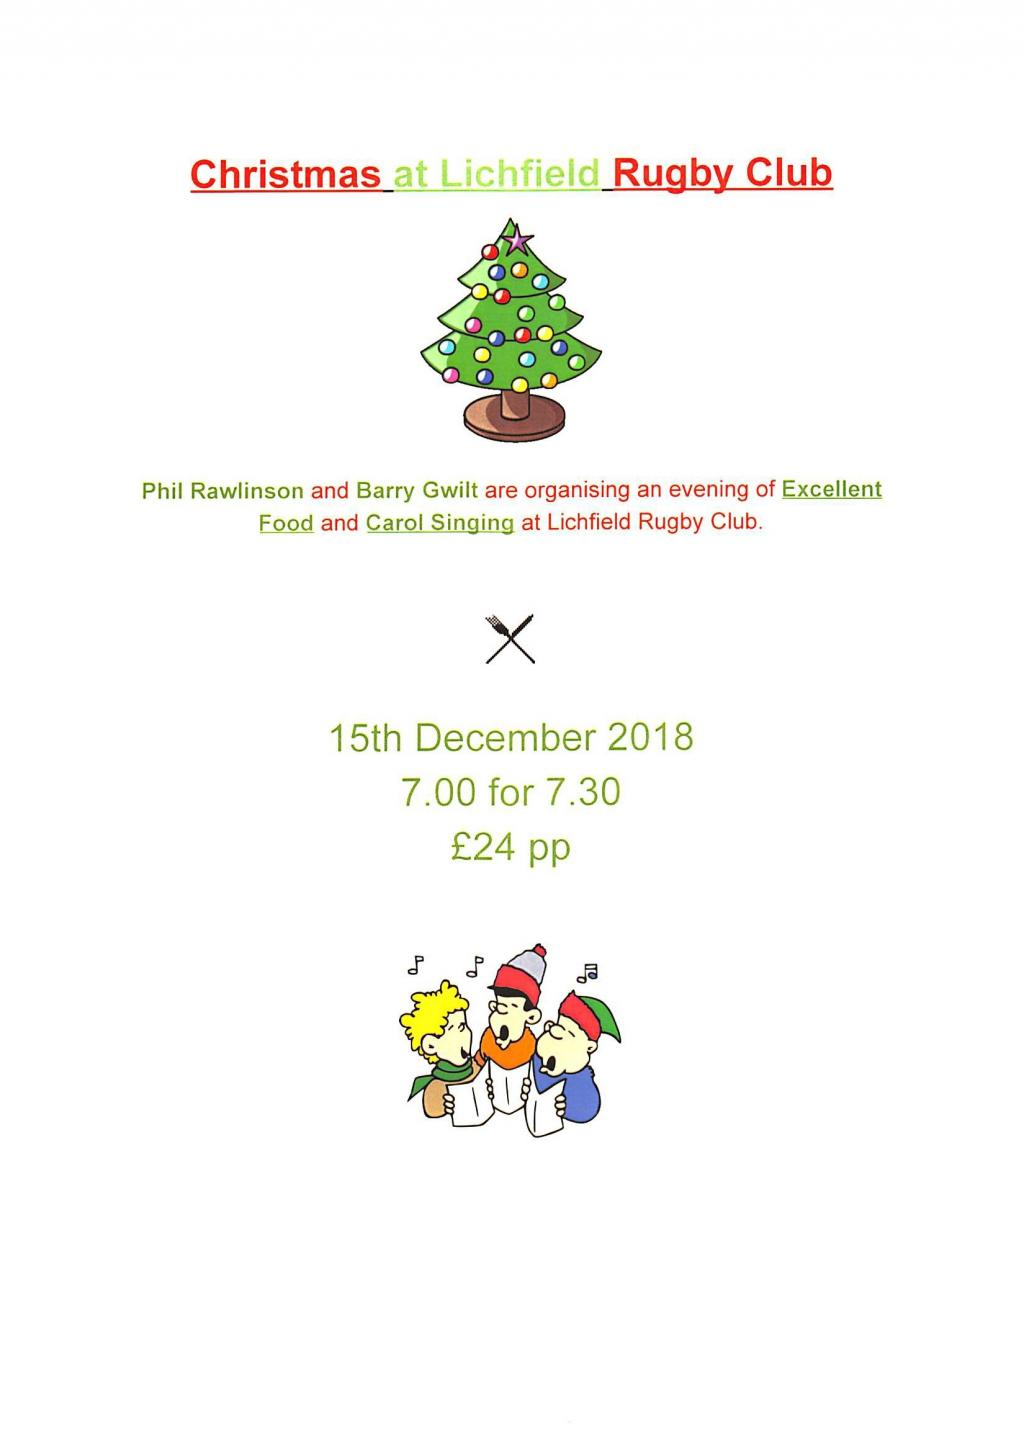 2019 CHRISTMAS at LICHFIELD RUGBY CLUB.jpg